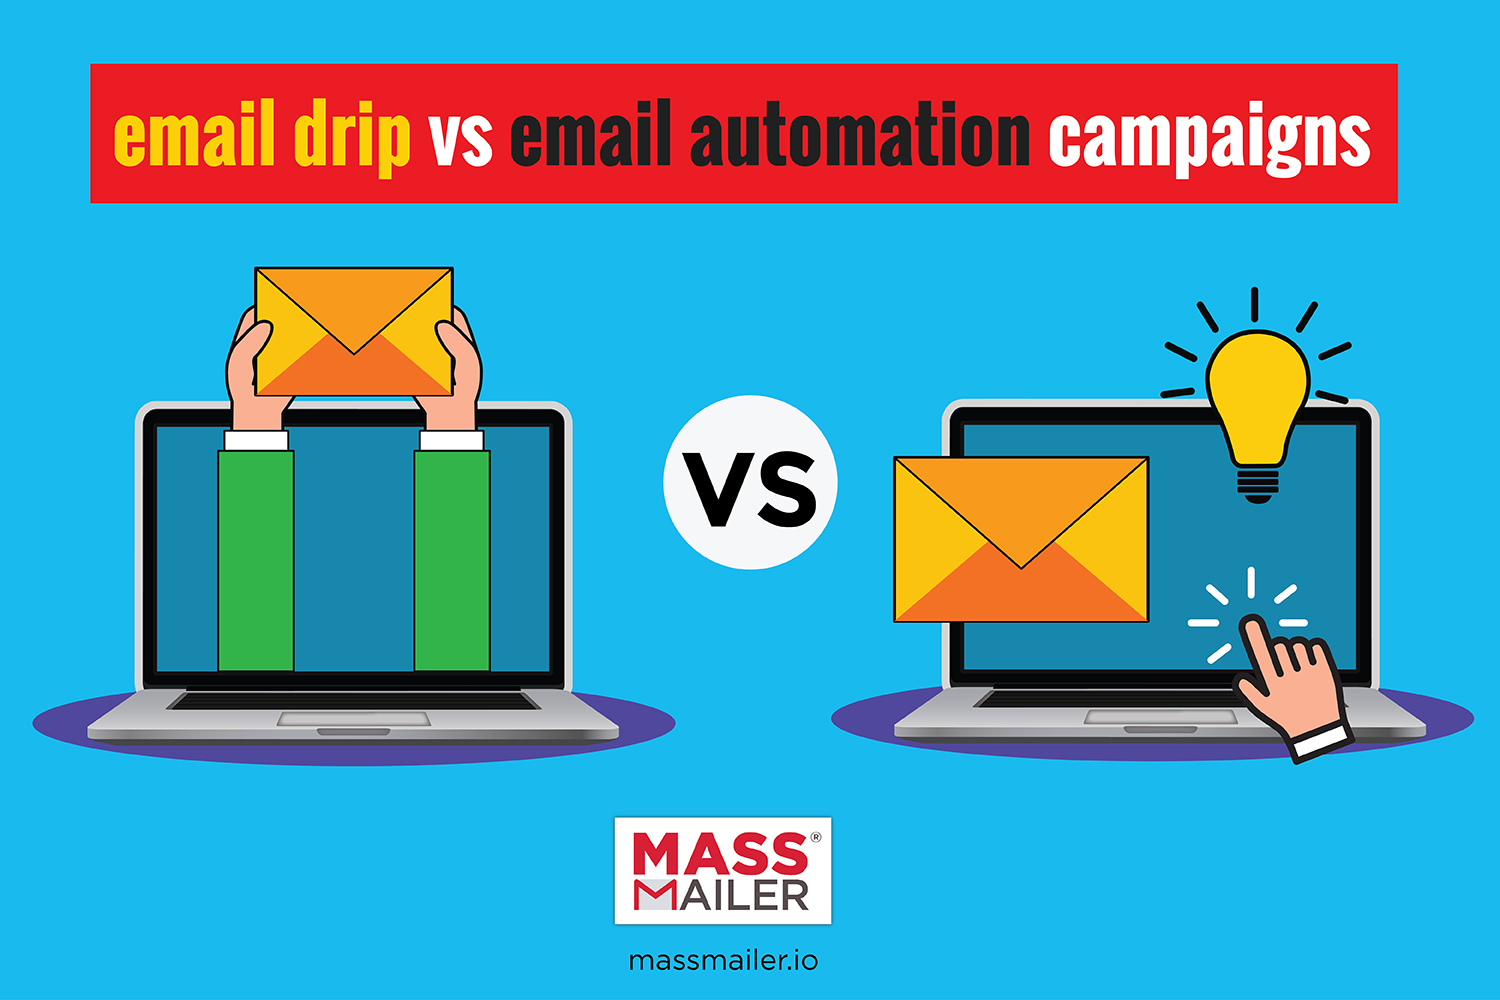 email drip campaign vs email automation campaign